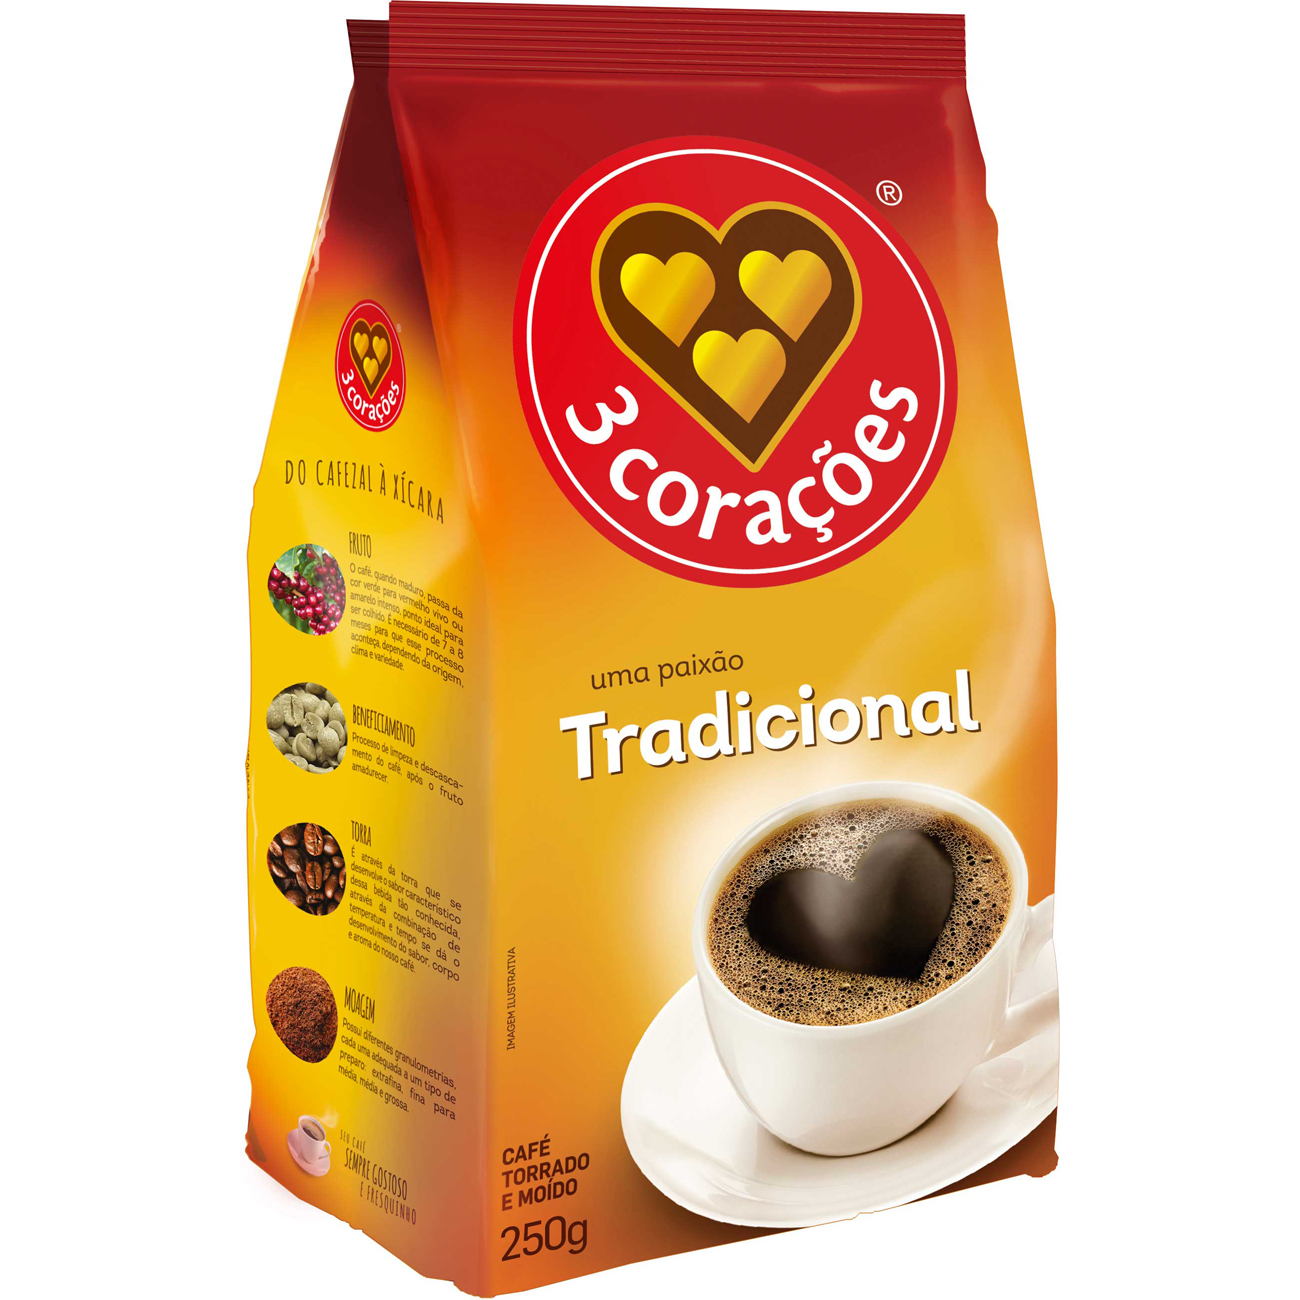 Cafe 3 Coracoes 250G Standpack Tradicional